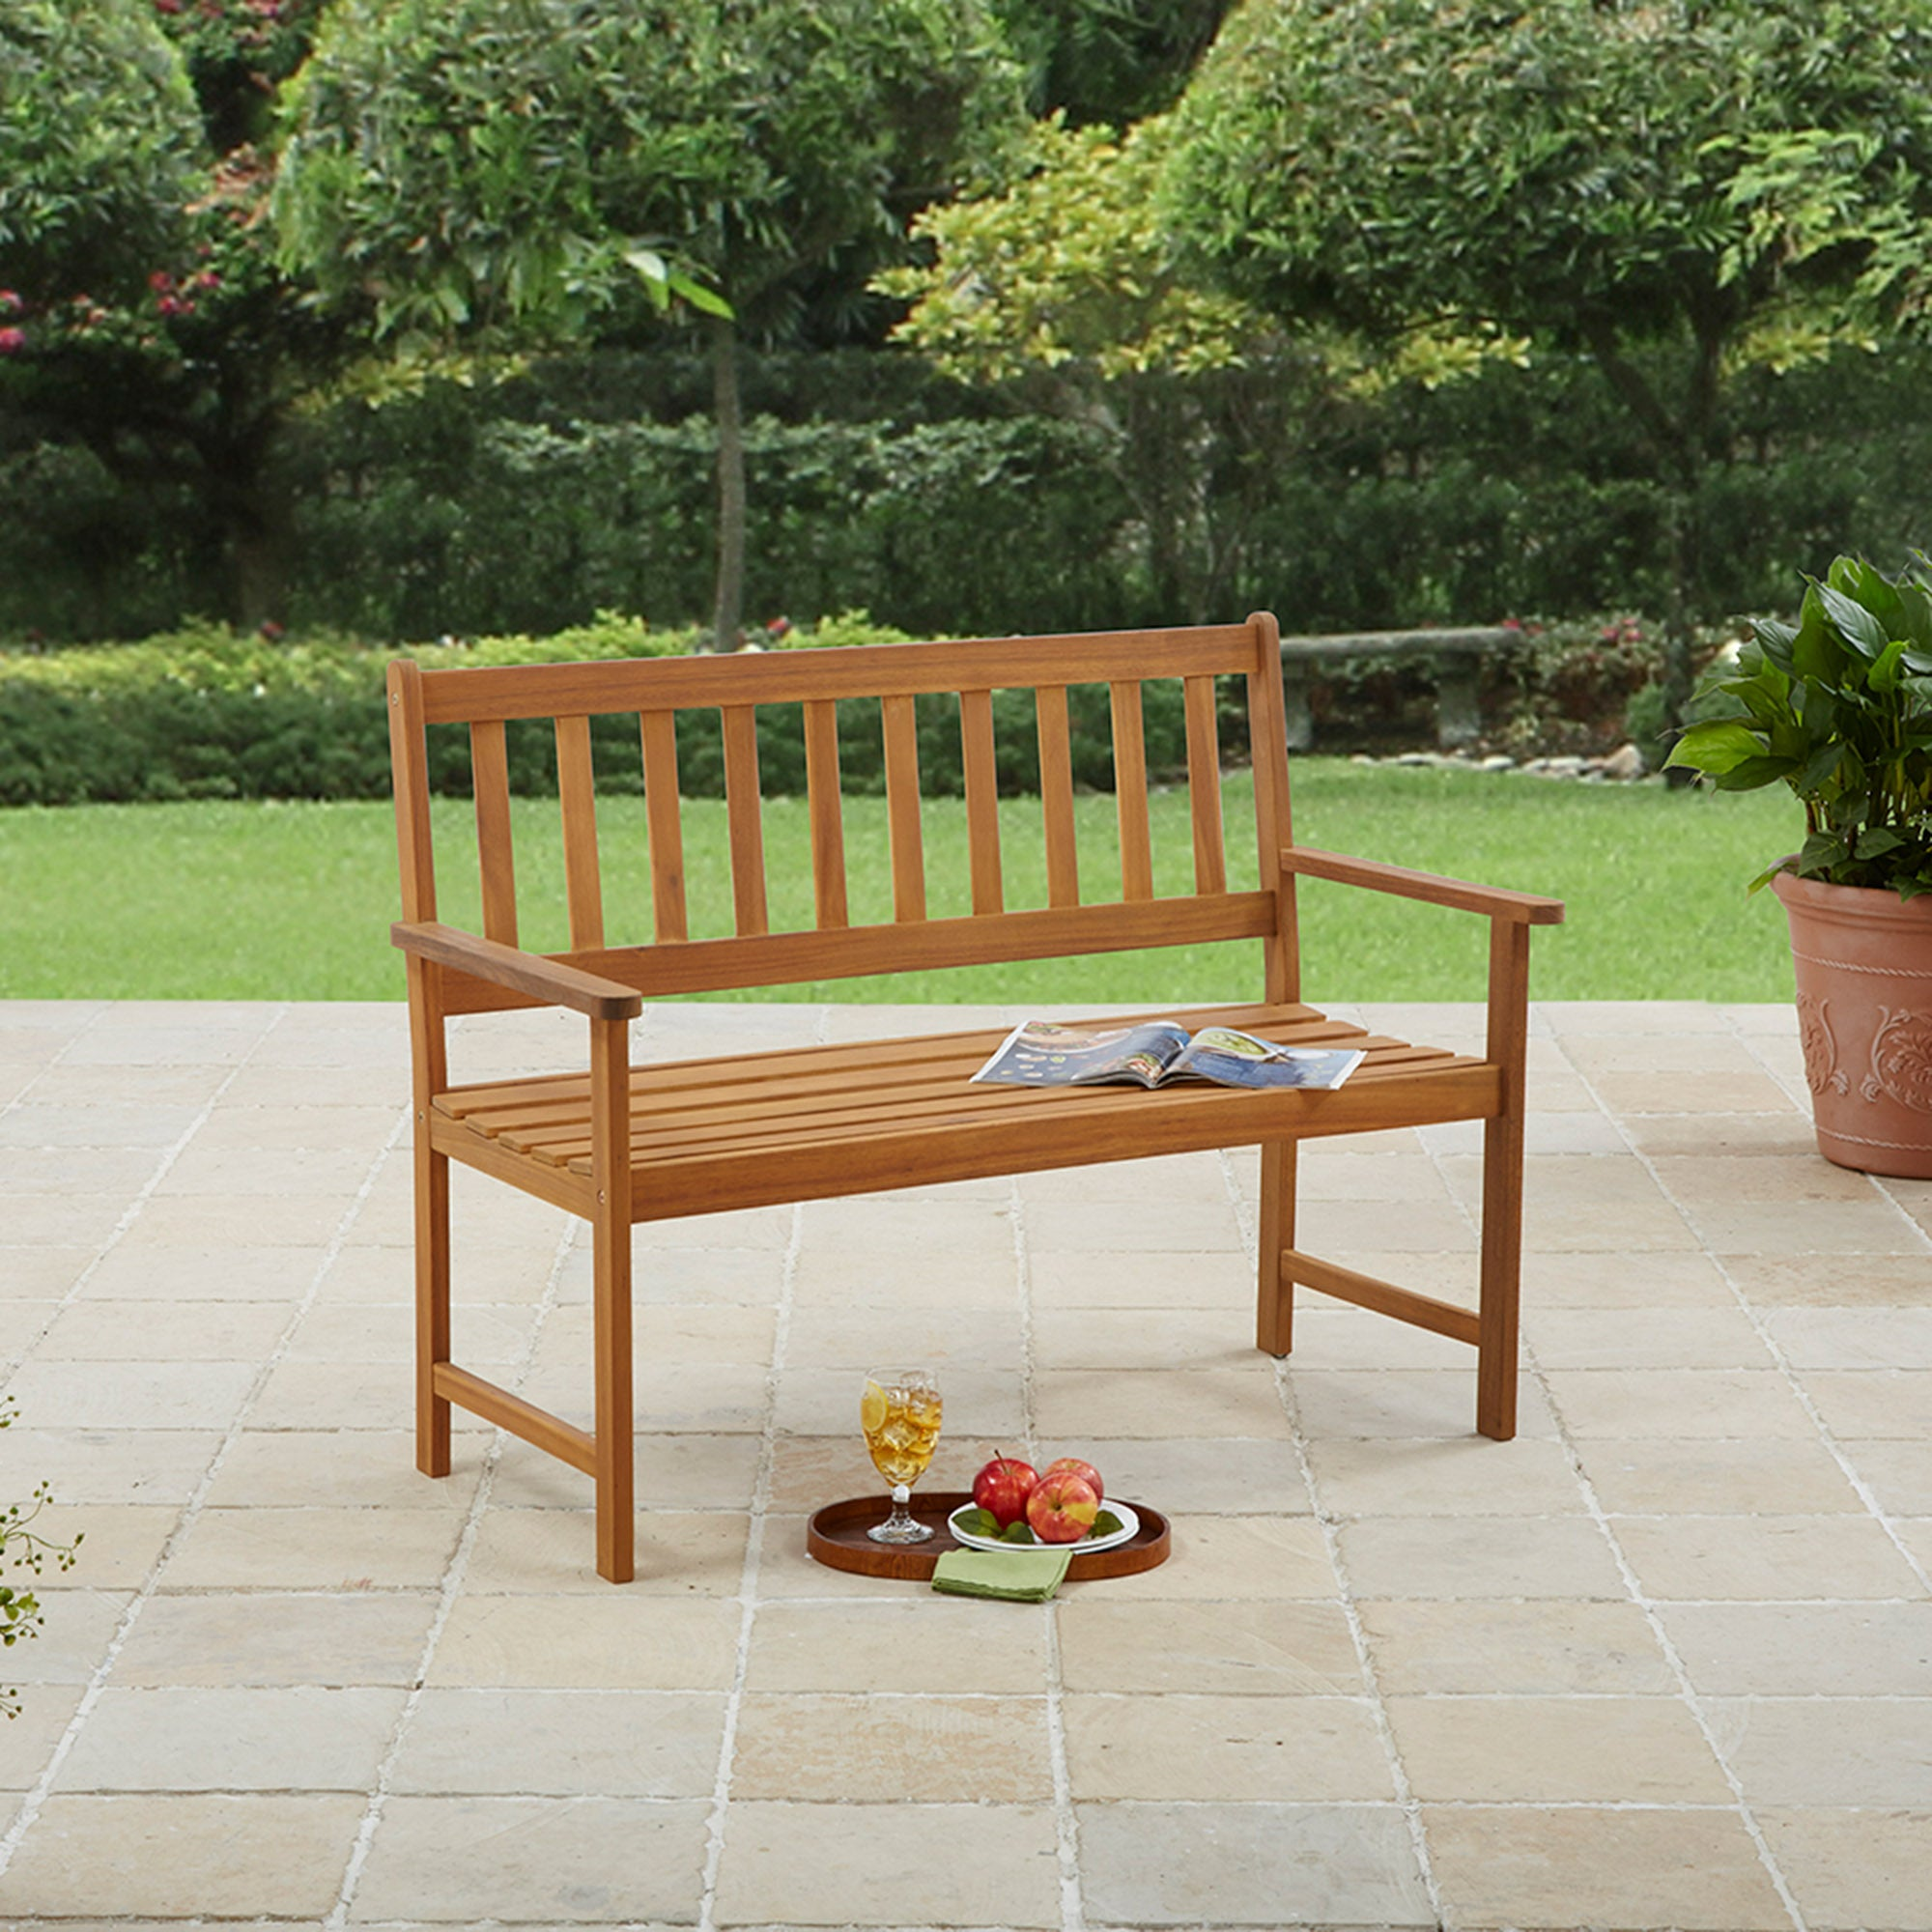 Photo of Wooden bench wood -brown-